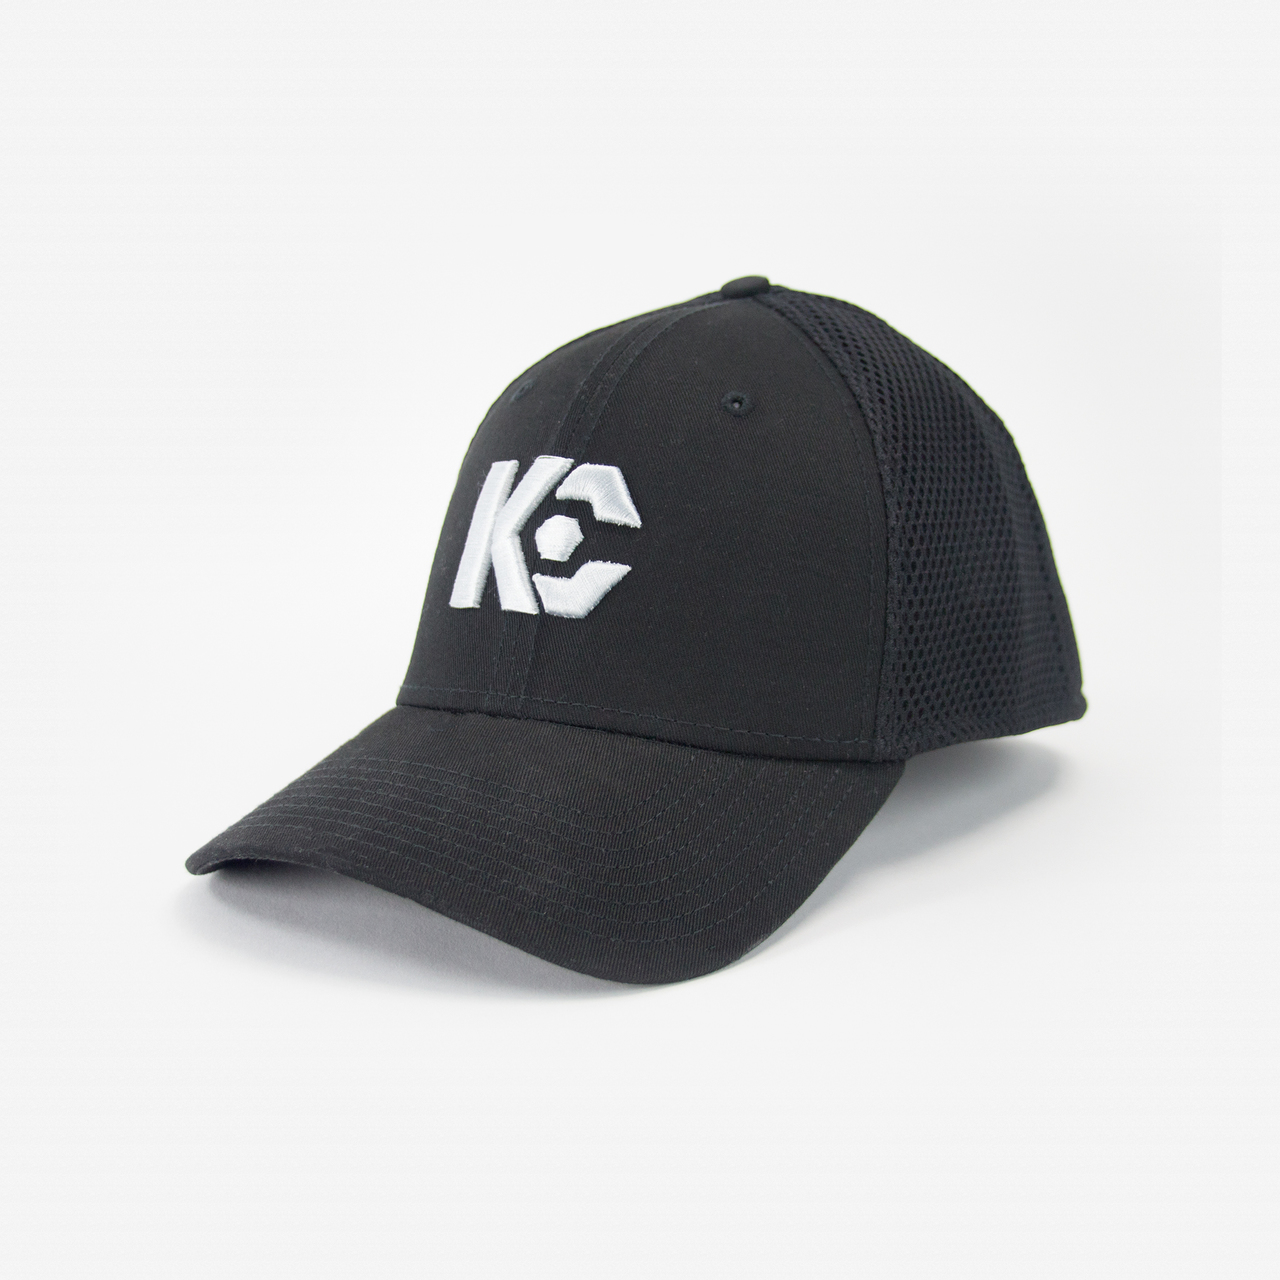 KC Tool New Era 39THIRTY Hat w/ Mesh Back - KC Tool